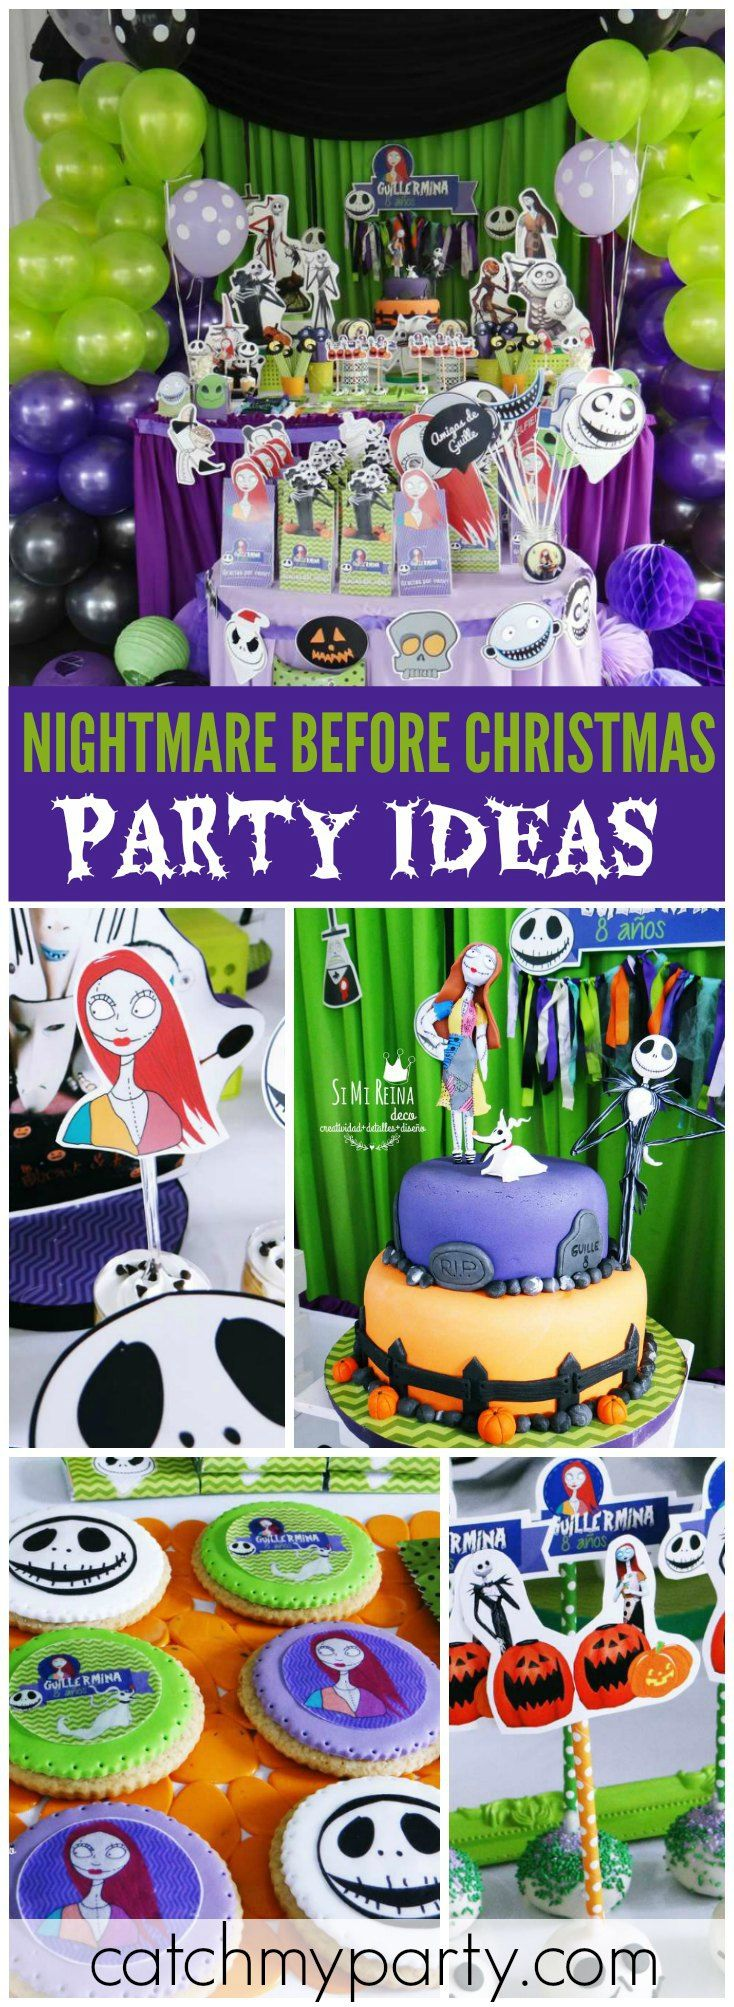 Halloween birthday party decoration ideas - How Cool Is This Nightmare Before Christmas Party See More Party Ideas At Catchmyparty